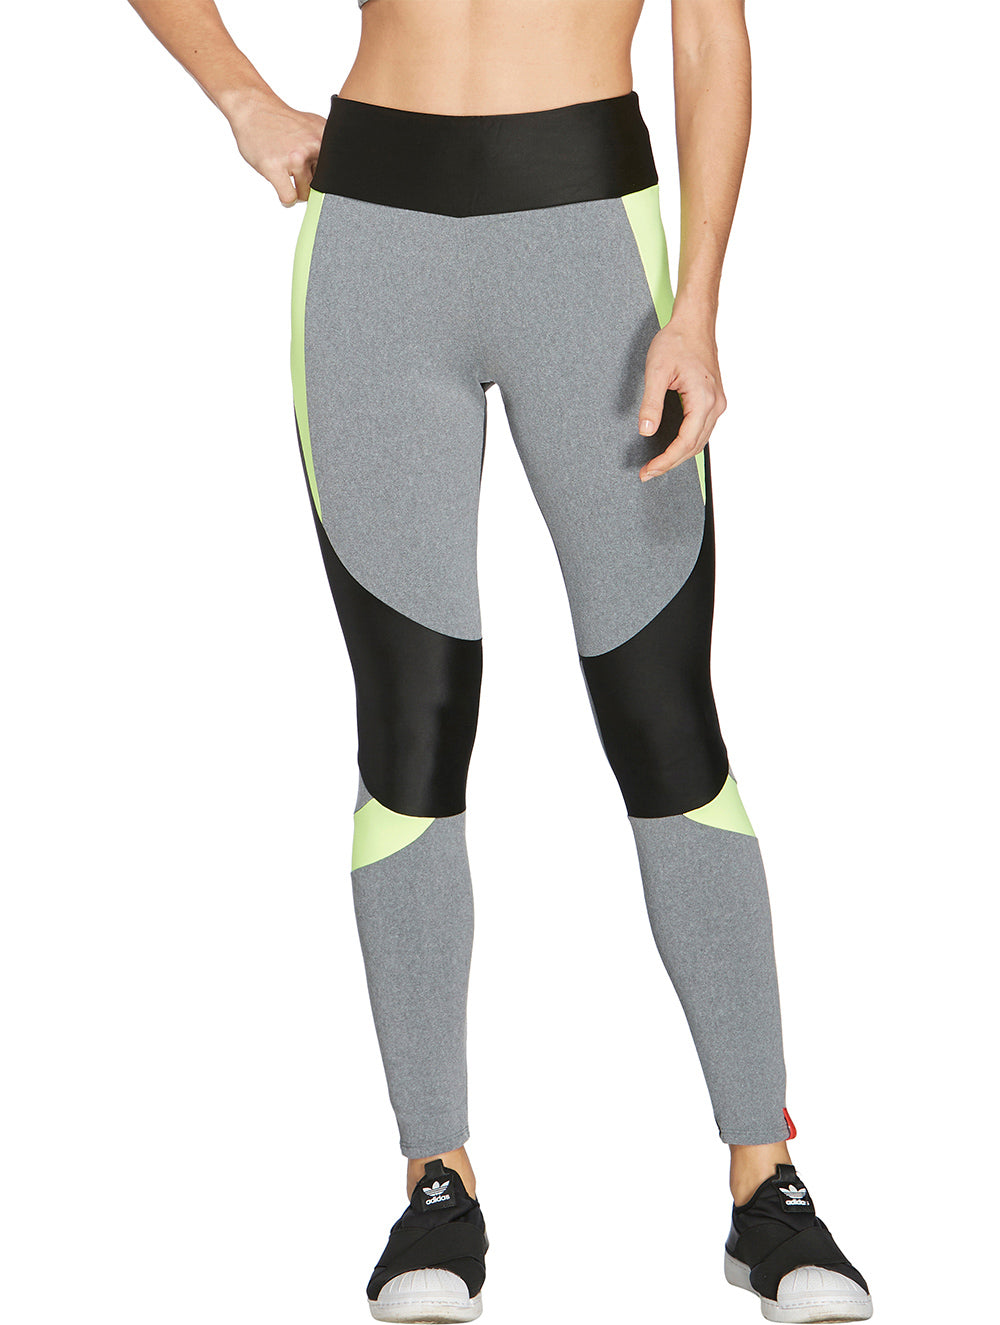 Mescla Neon Multi-colored Legging